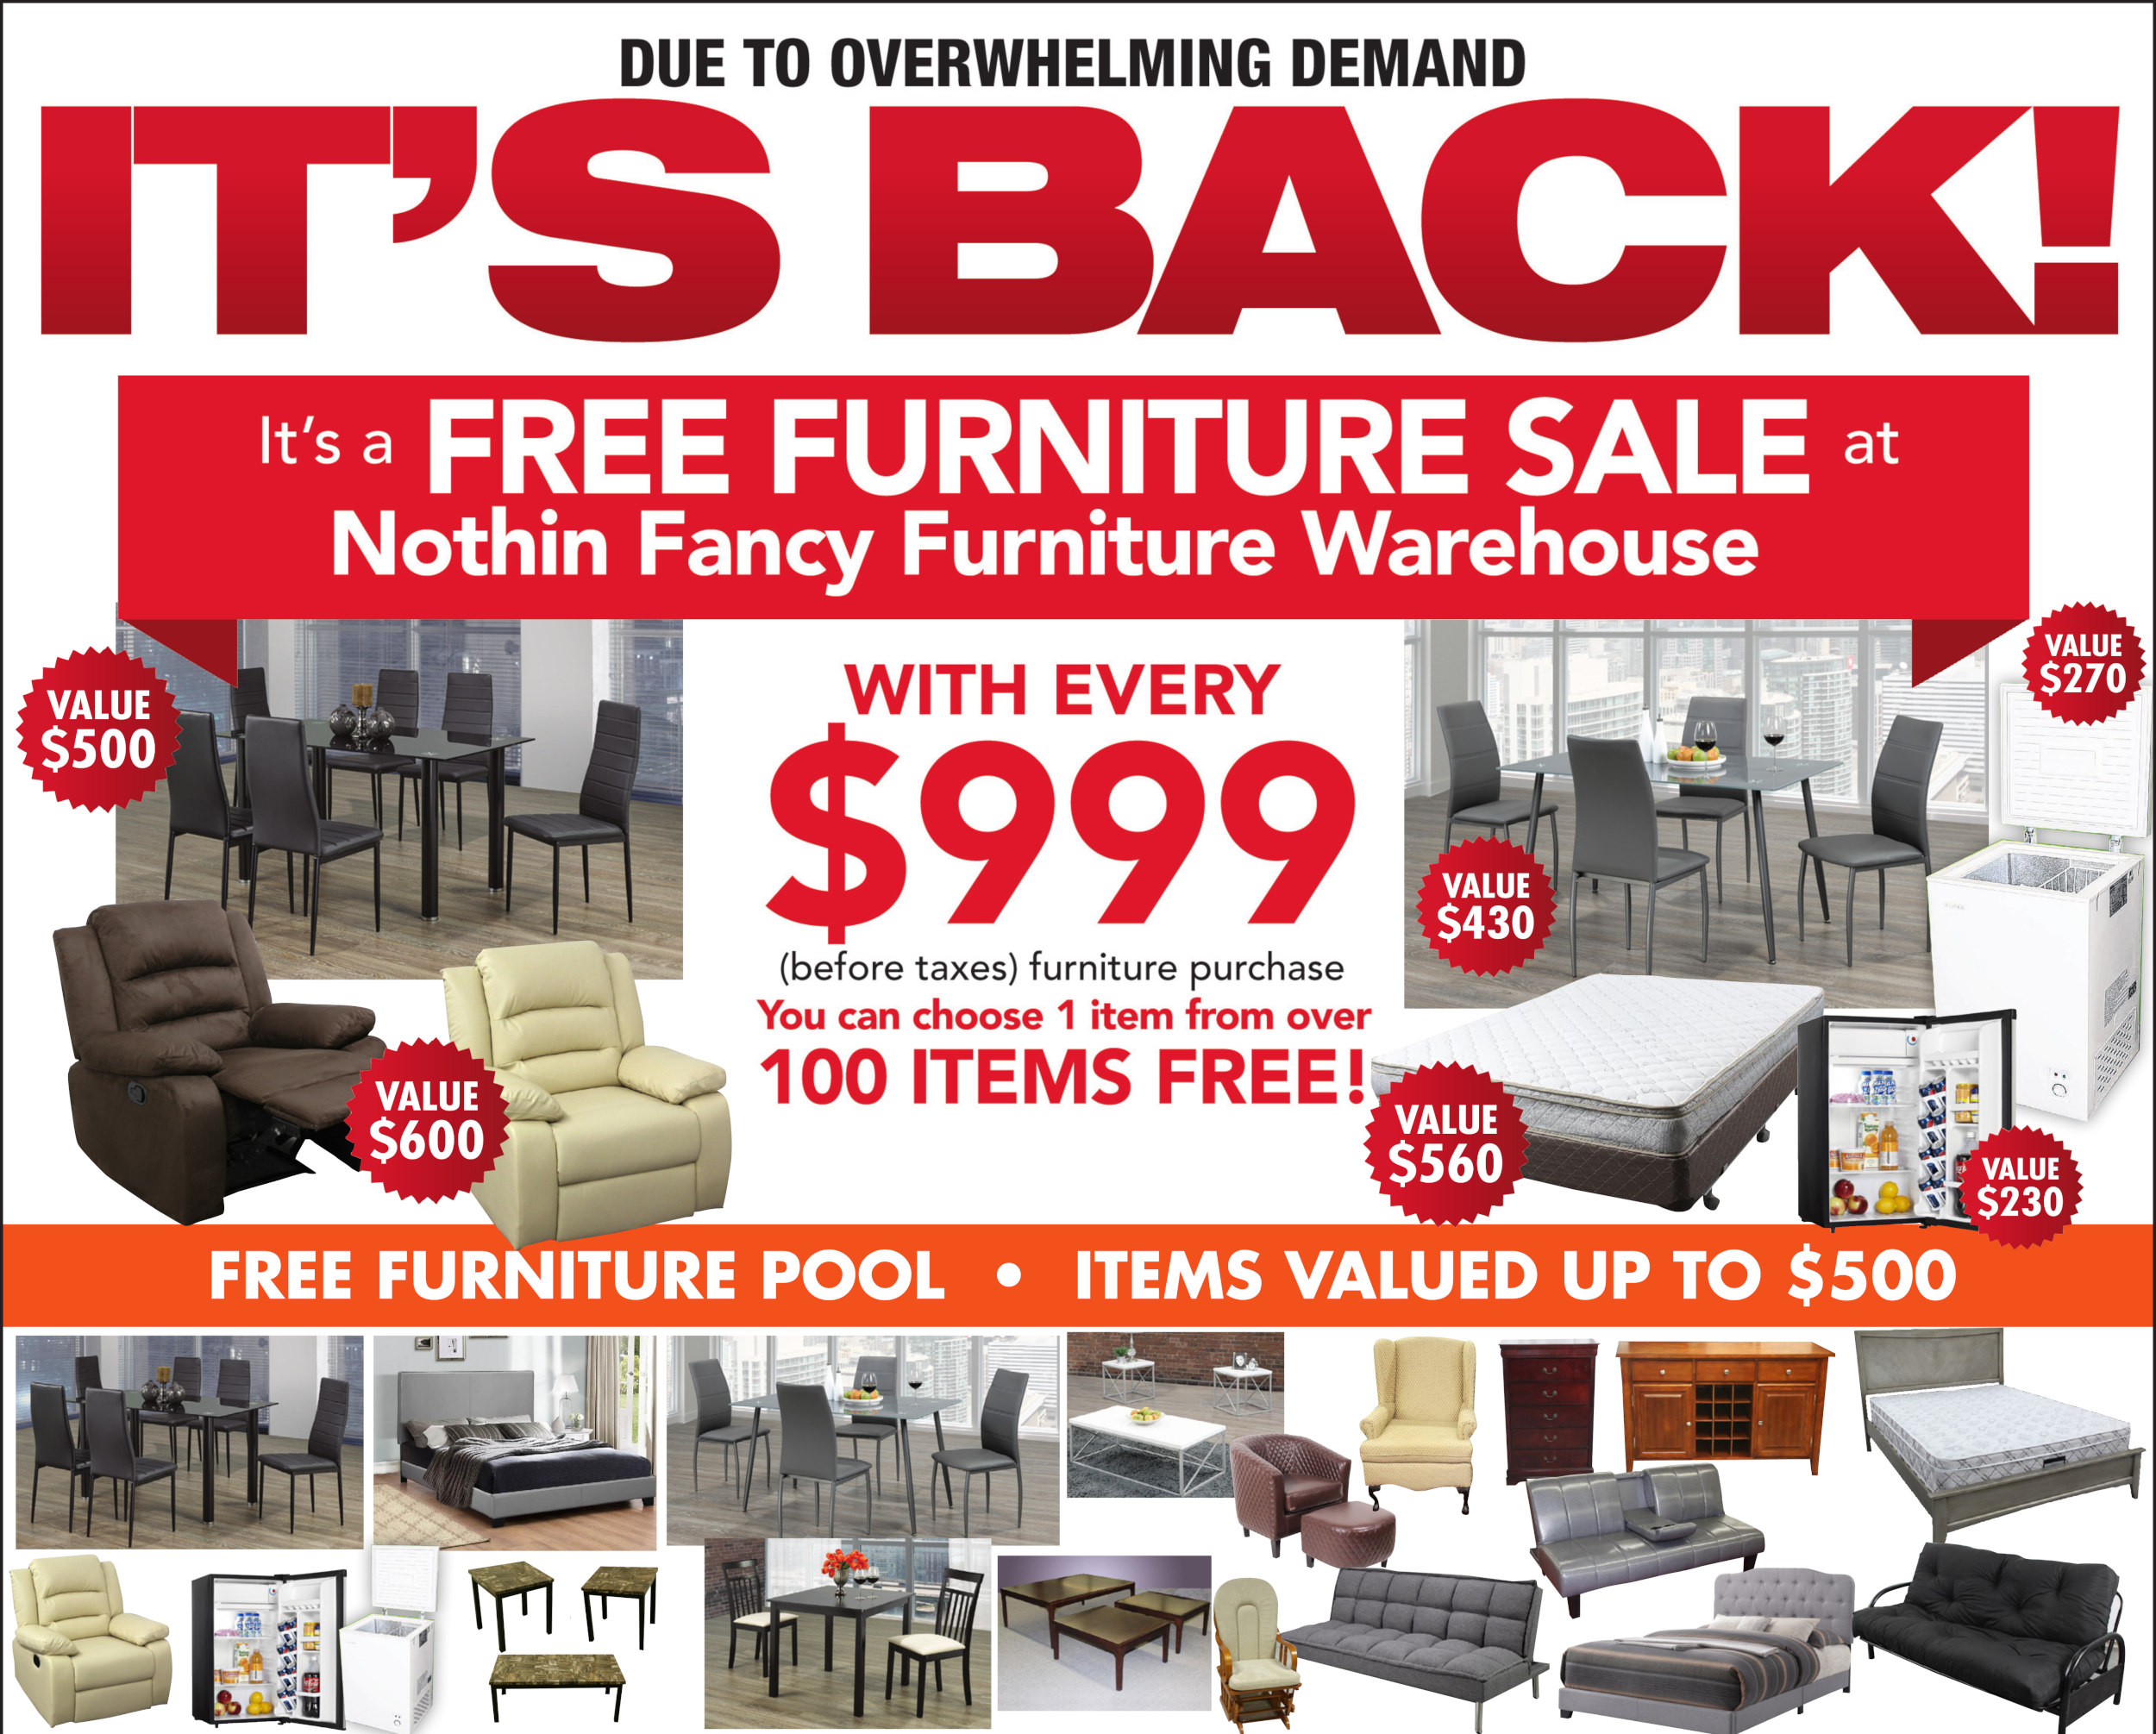 Nothin' Fancy's Free Furniture Sale